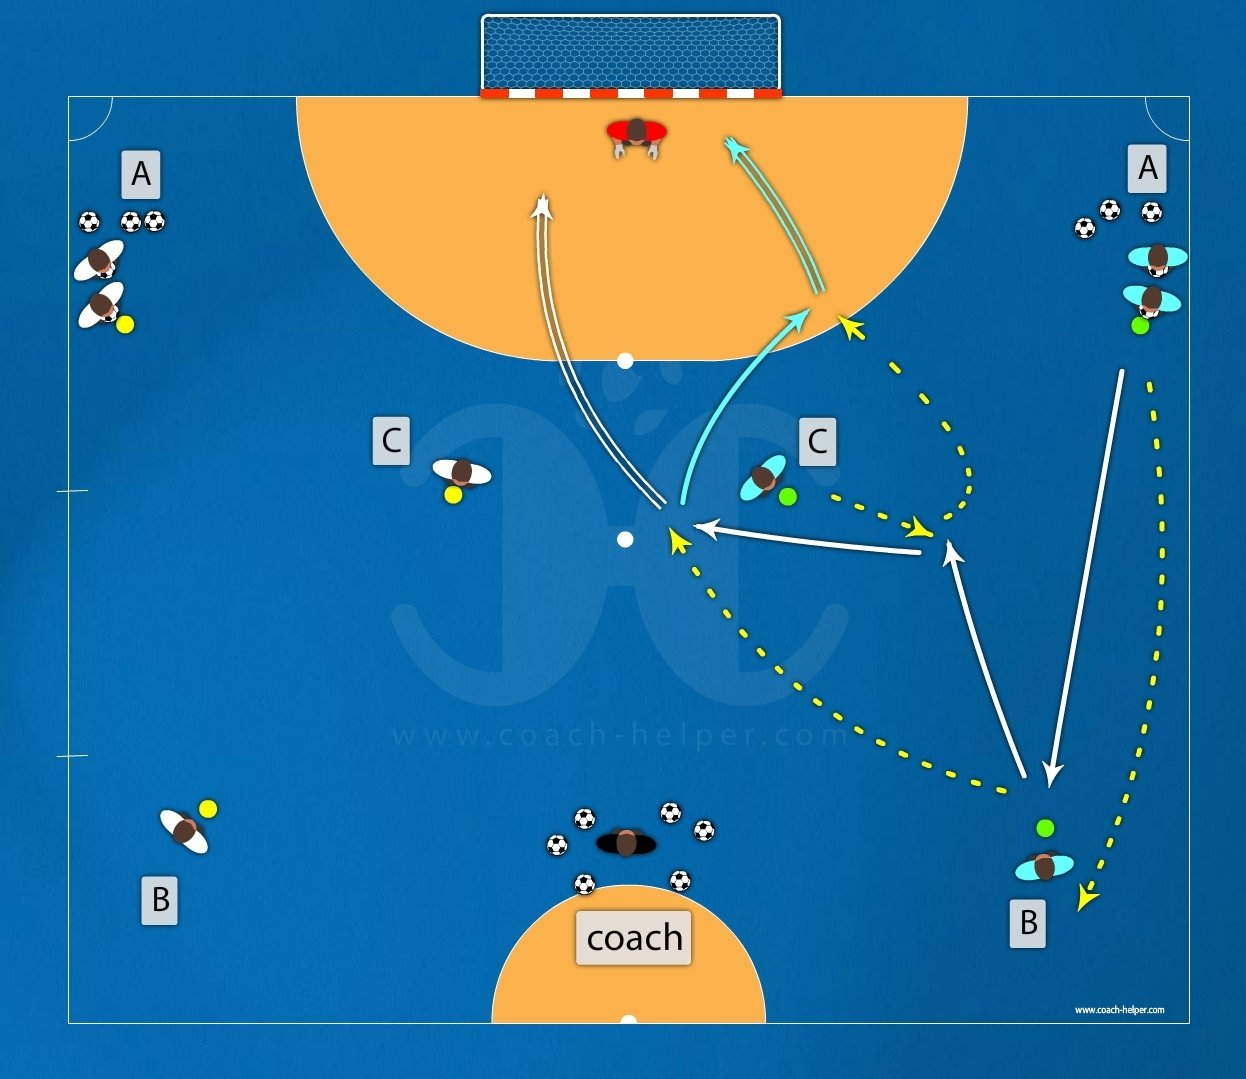 Digital Collection 2 - 100 drills Futsal